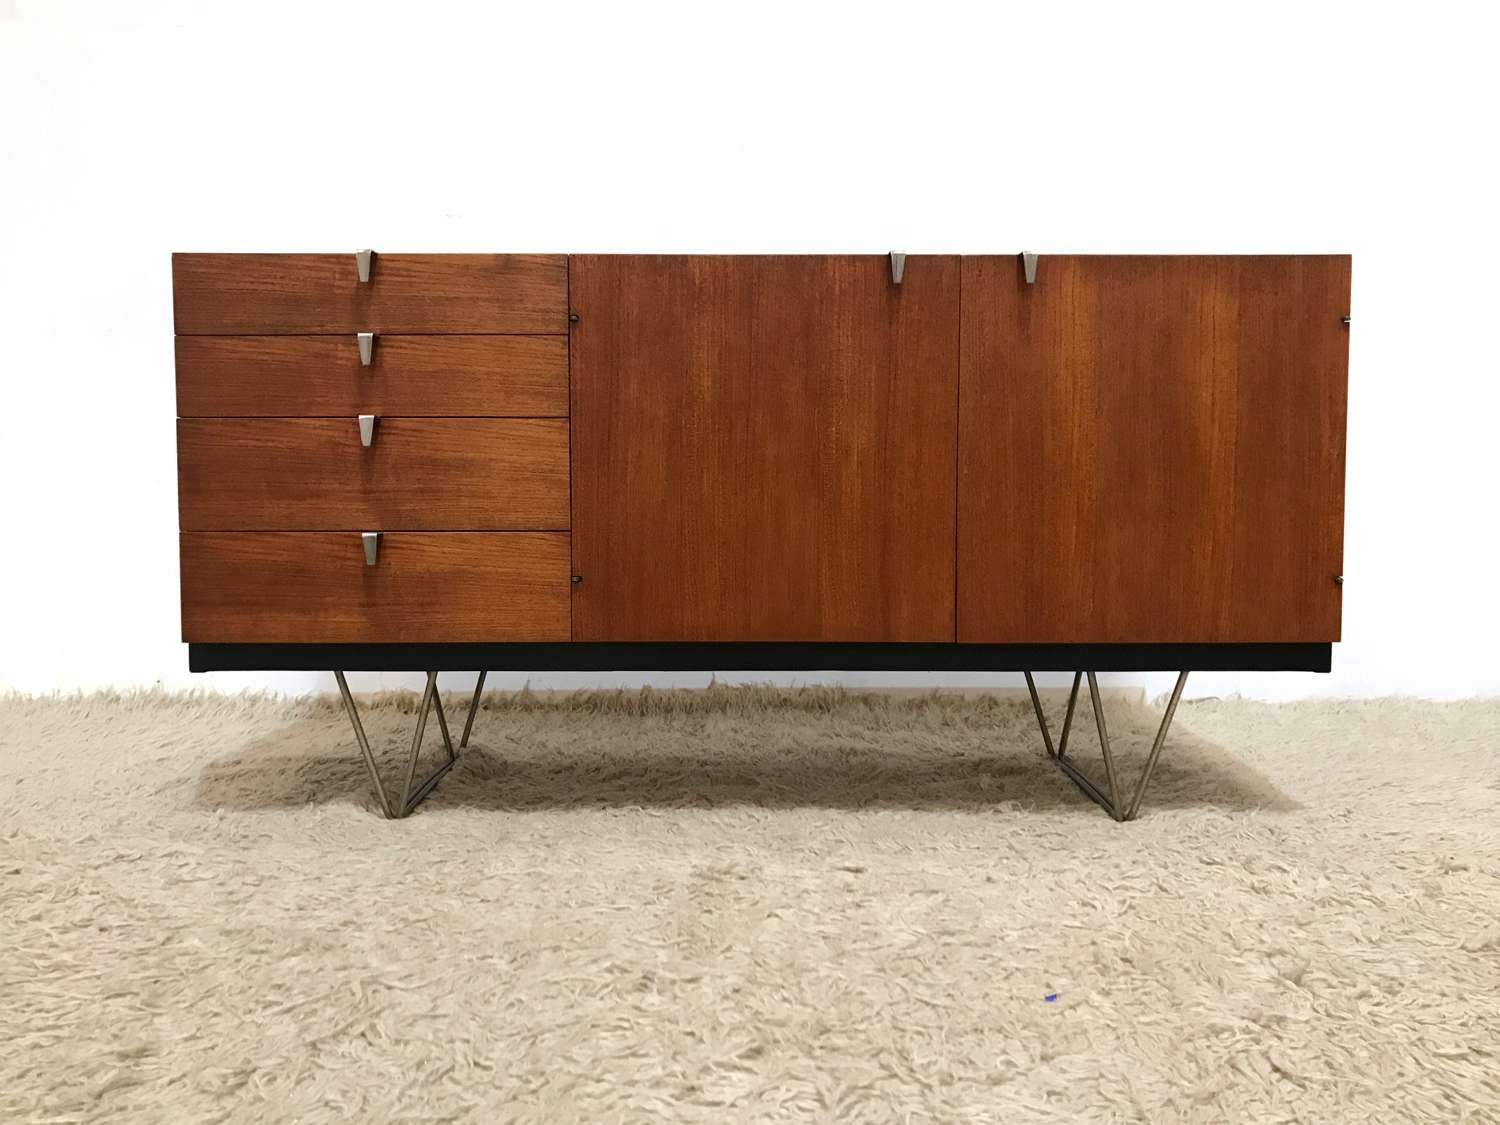 50s 60s Rare Elegant Mid Century Modernist Stag S Range Sideboard Within 50s Sideboards (View 2 of 20)